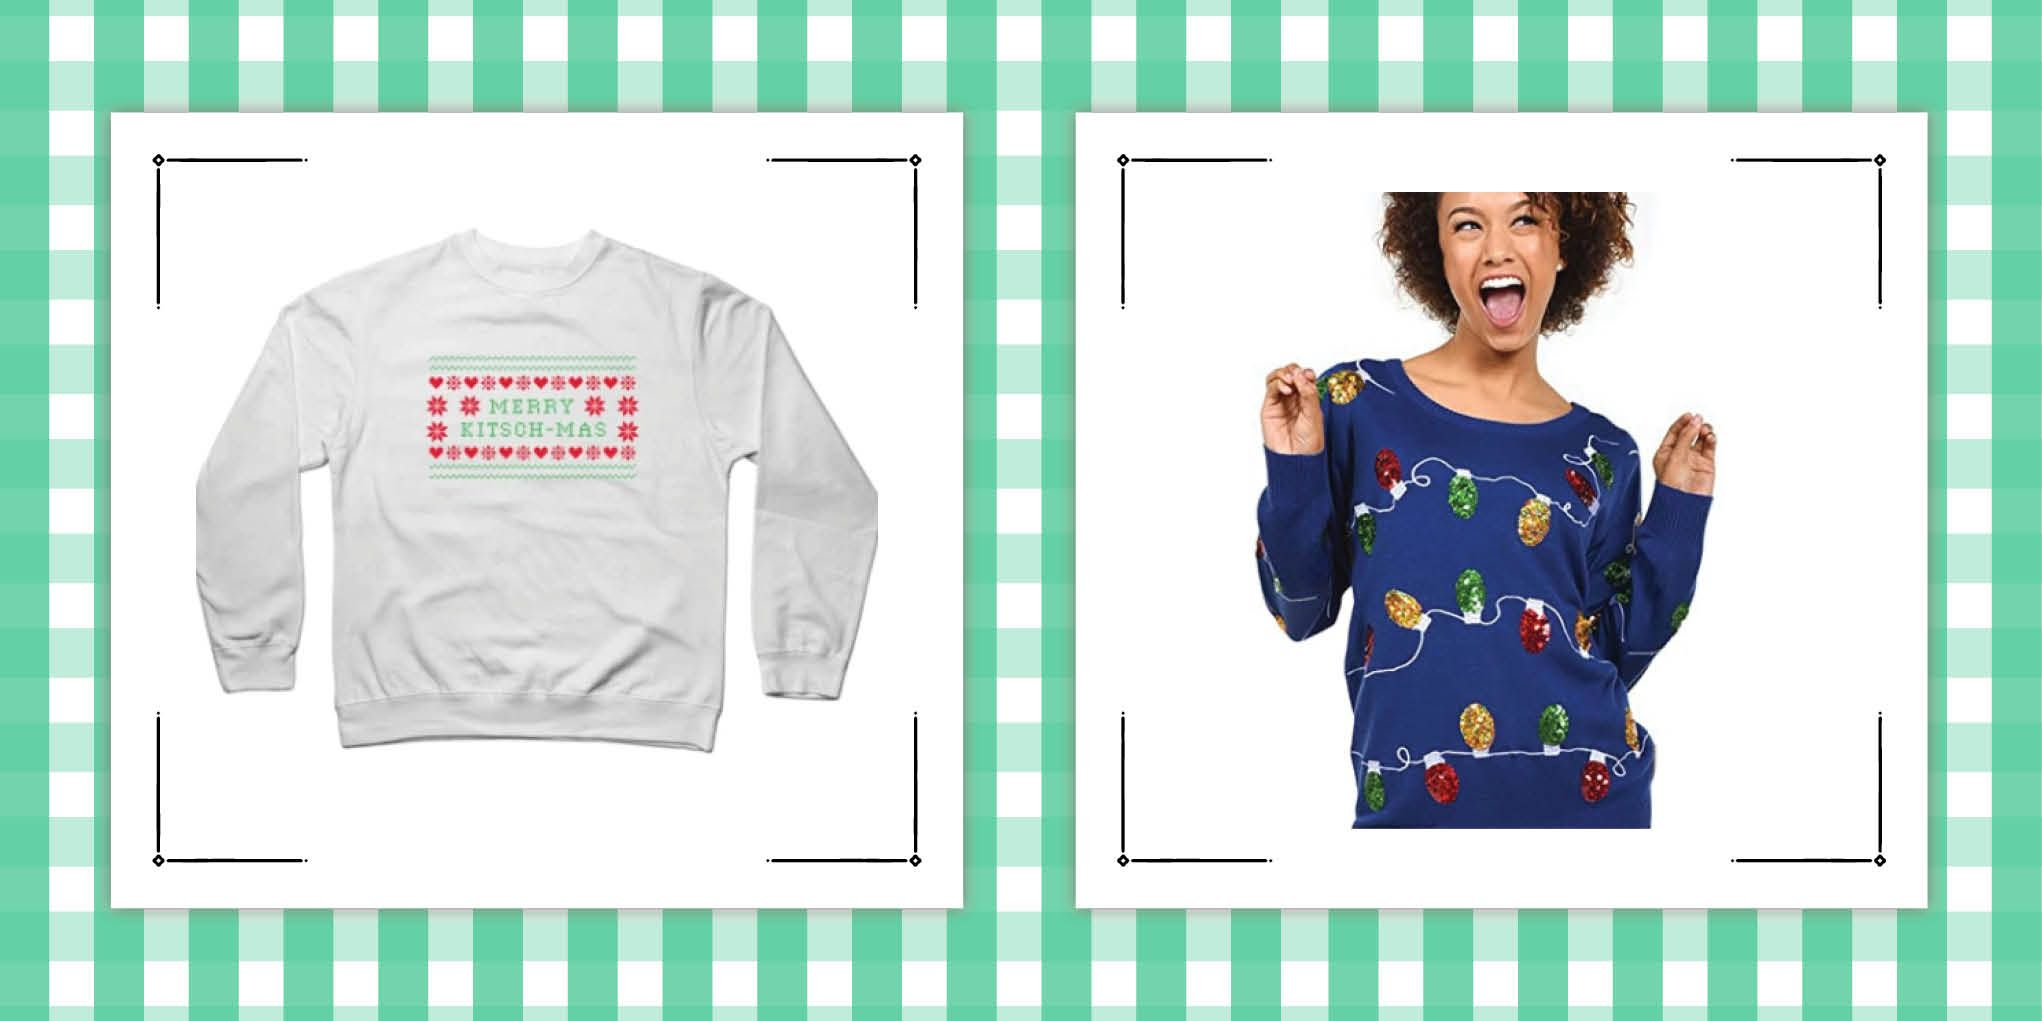 Funn Christmas Sweater 2020 30 Best Ugly Christmas Sweaters   Funny Holiday Sweater Ideas